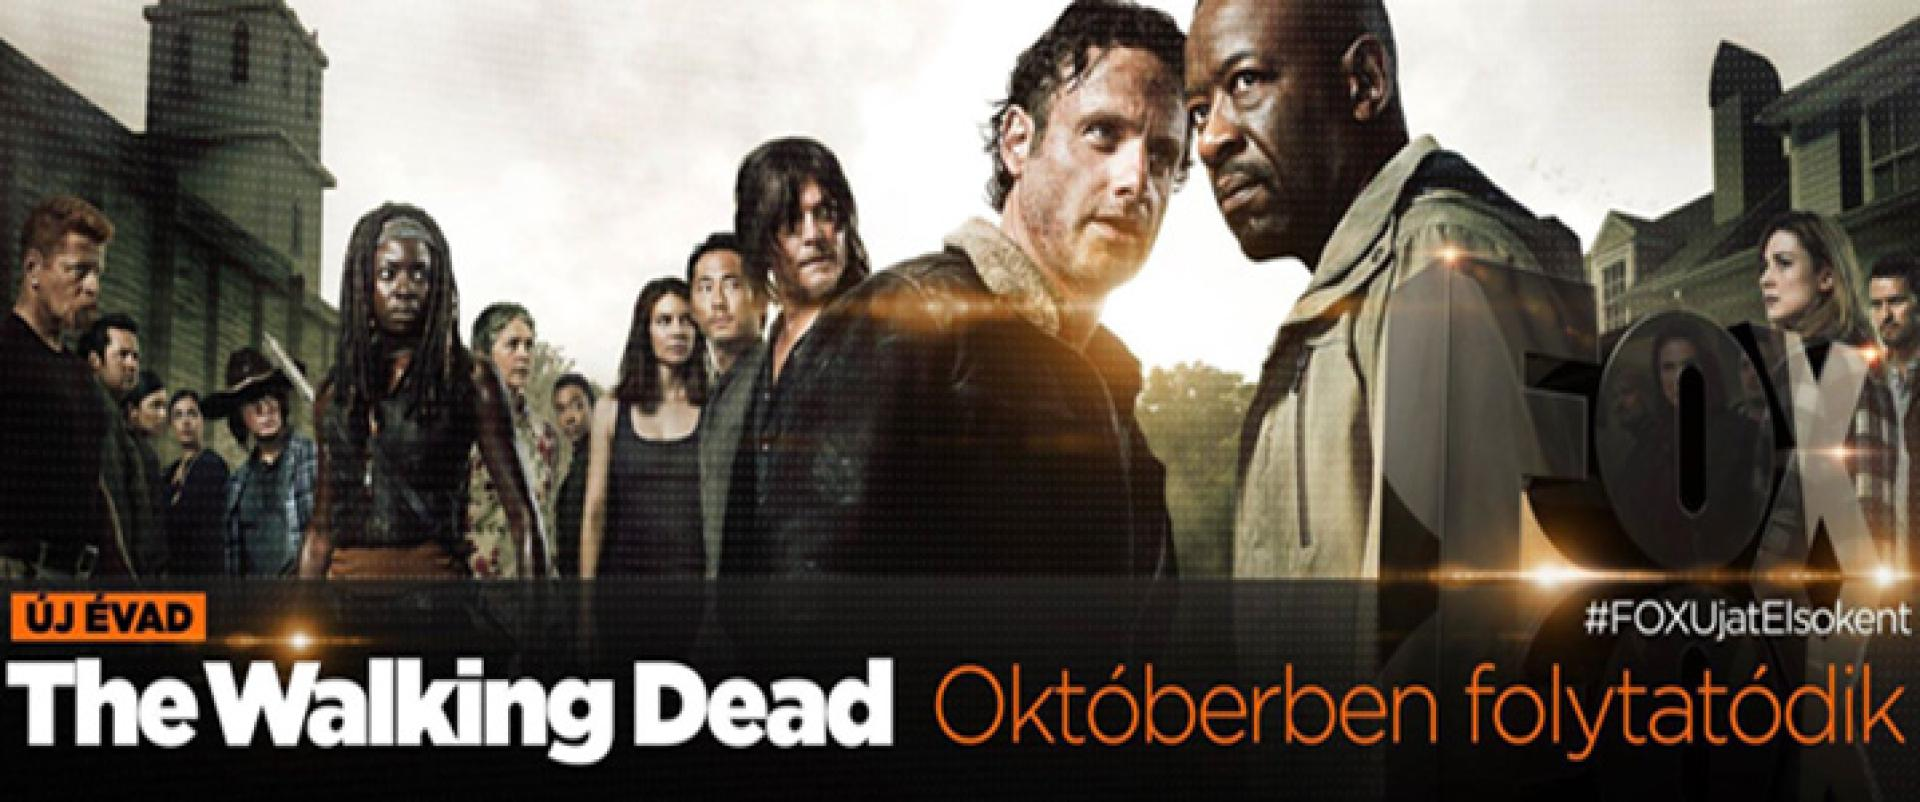 The Walking Dead, 6. évad: újabb promóvideó